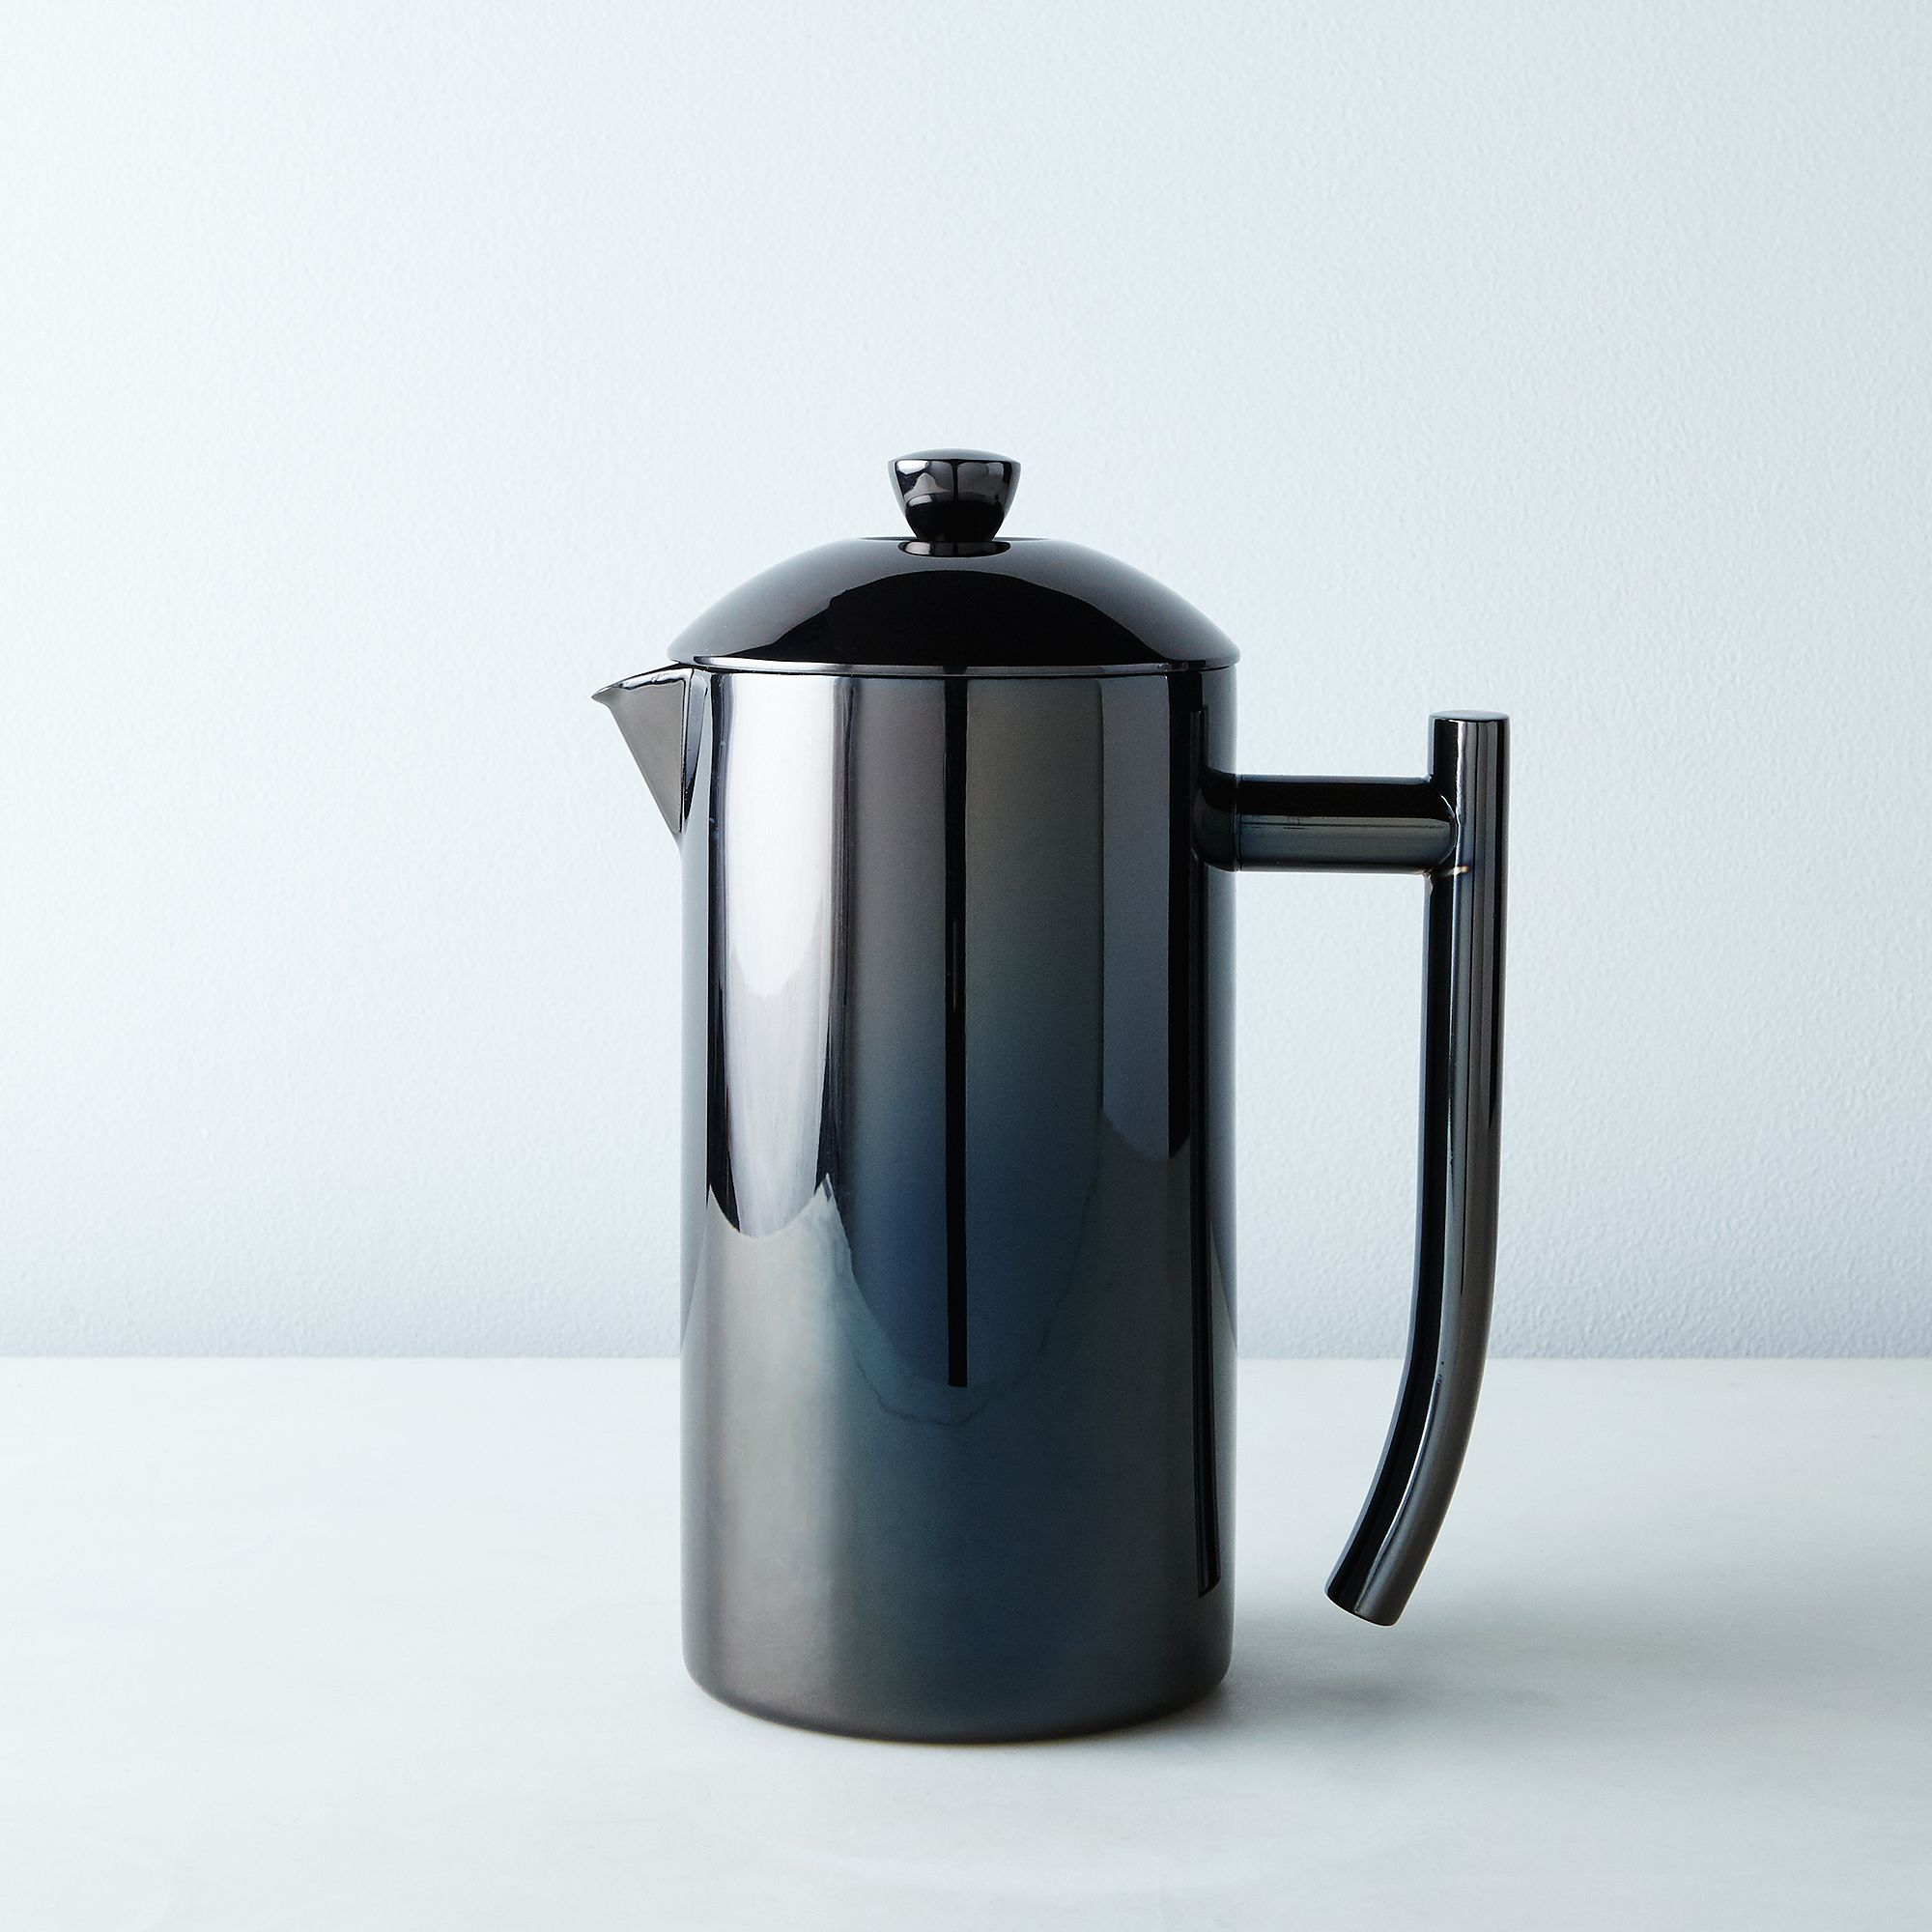 094424c0 cc24 414d 8e47 e4812faae2be  2015 0729 frieling 23oz stainless steel french press silo rocky luten 007